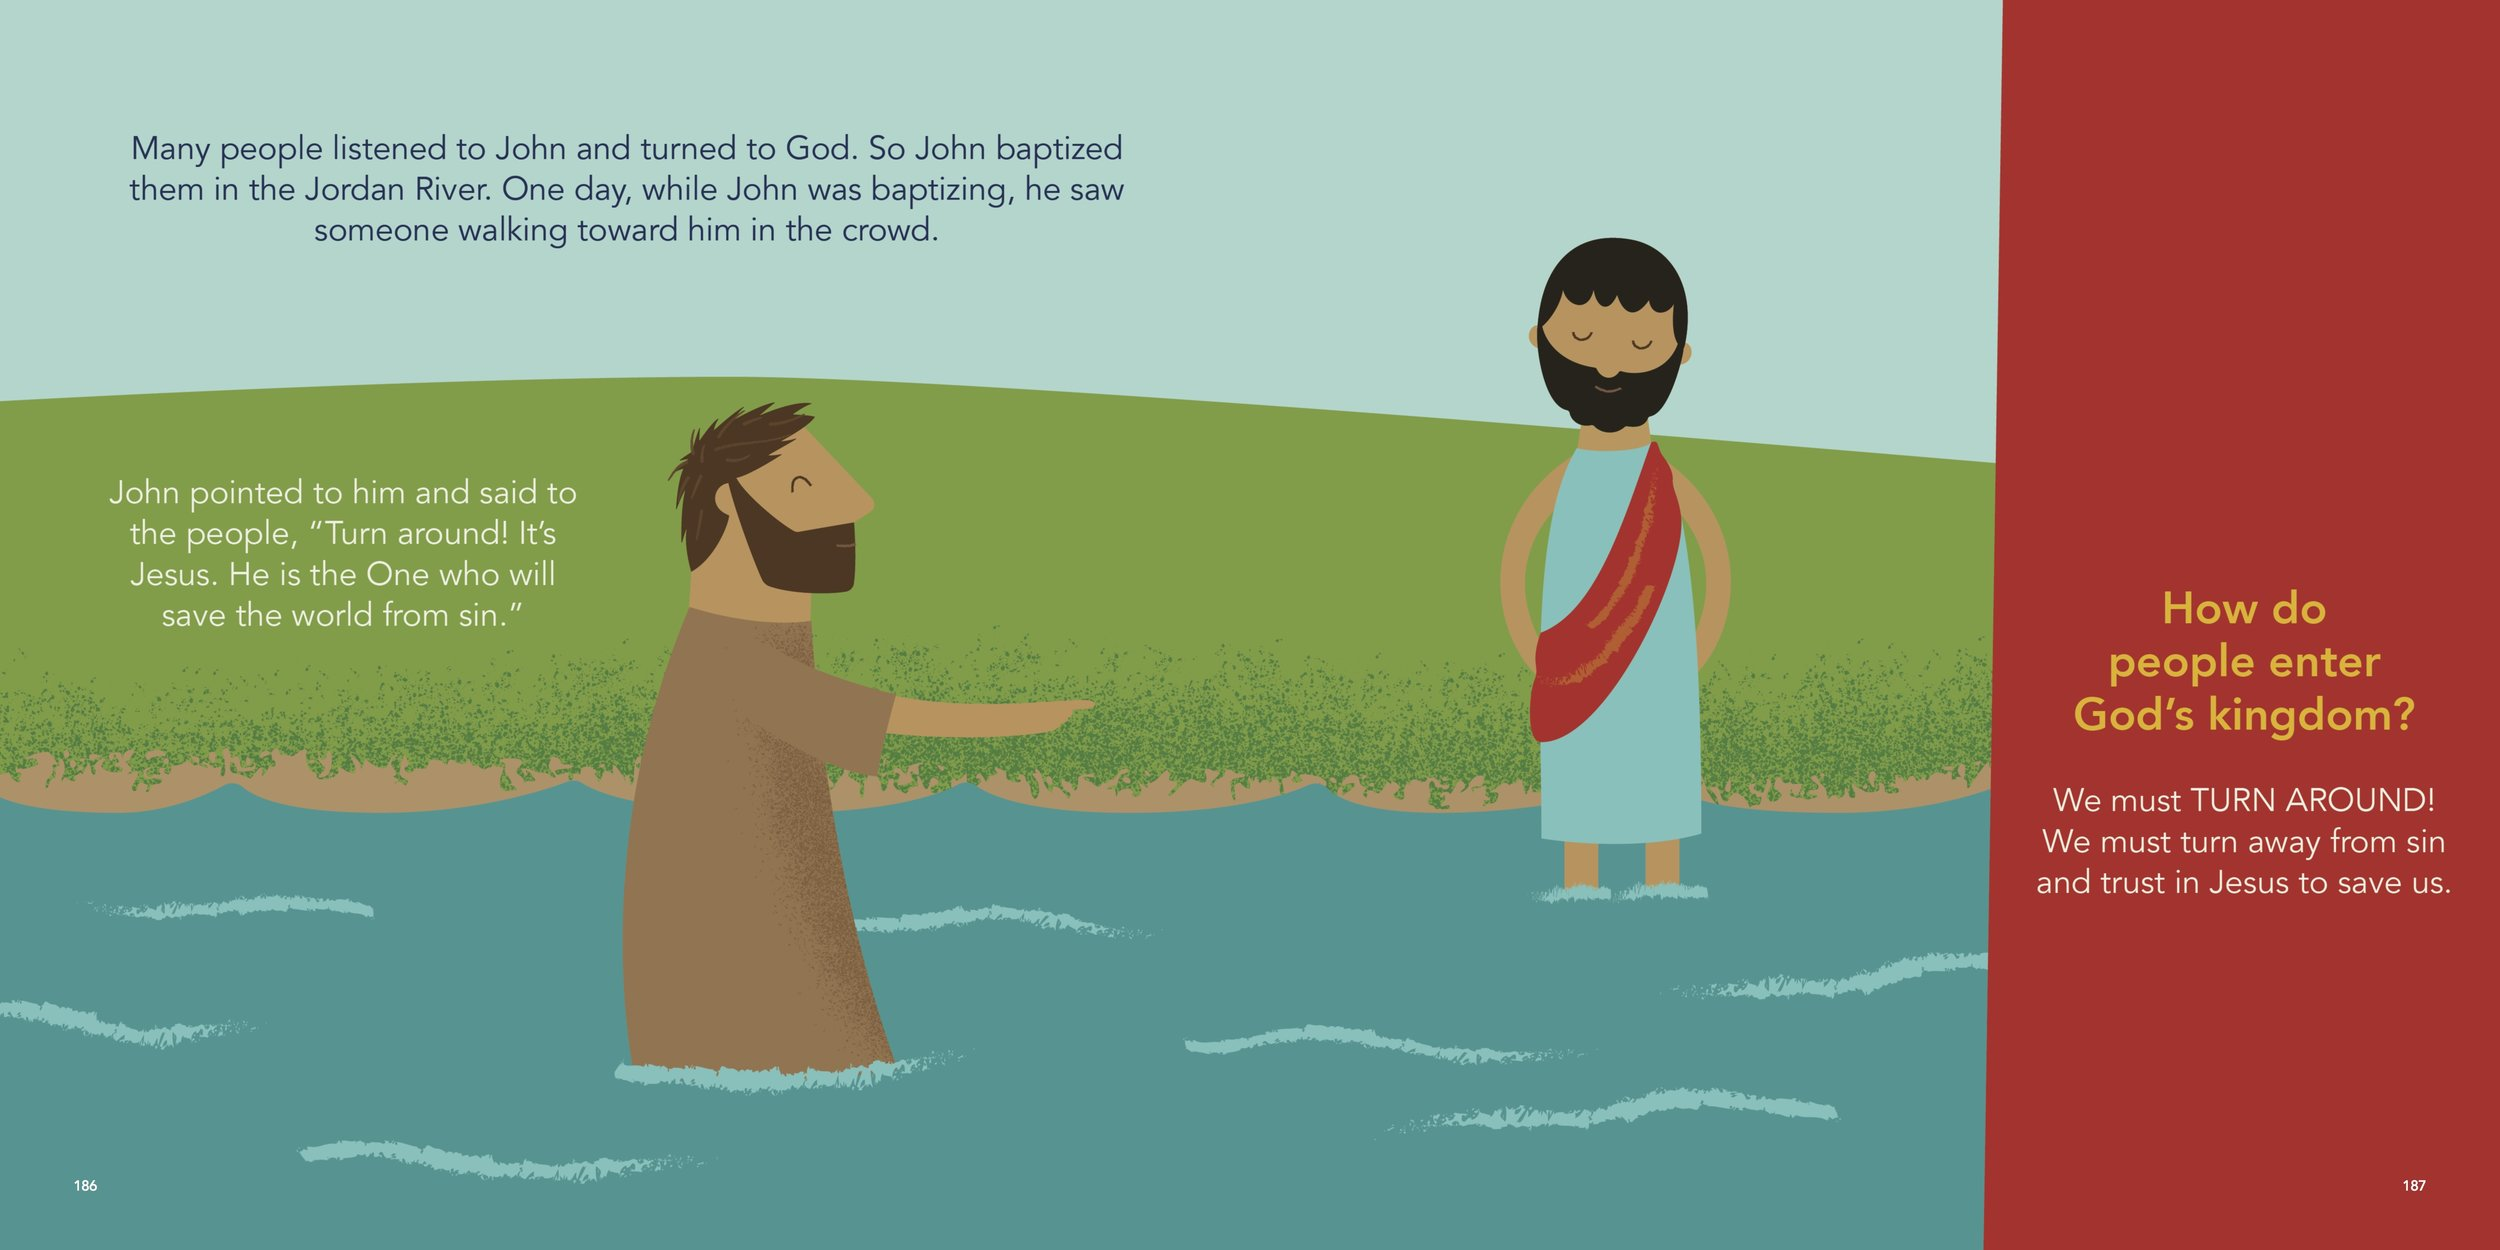 Illustration and layout by Trish Mahoney from   The Beginner's Gospel Story Bible   by Jared Kennedy, (New Growth Press, 2017).